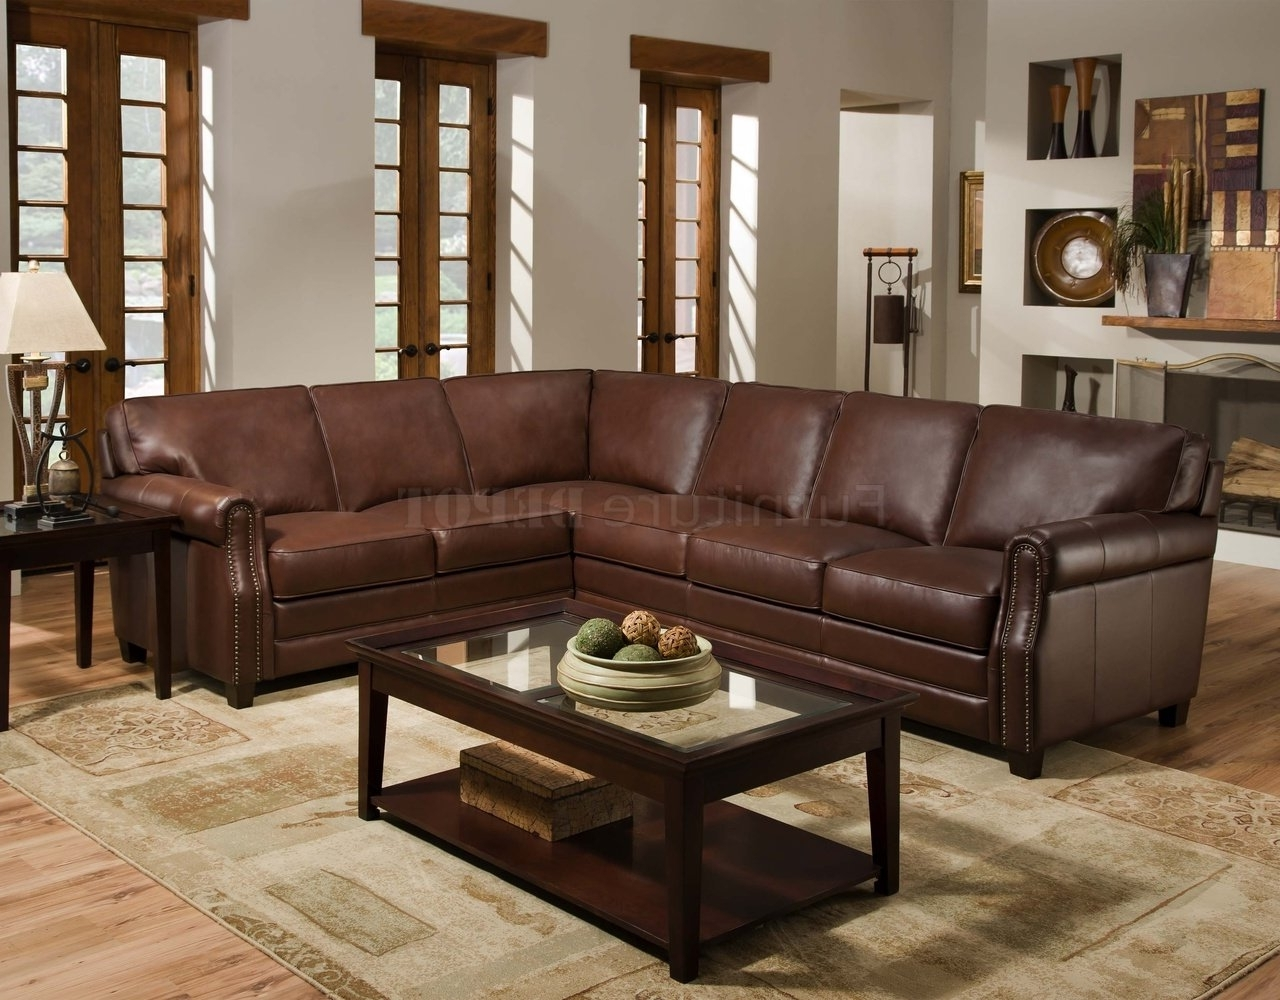 Sectional Sofas Under 400 Regarding Most Recently Released Furniture: Brown Leather Cheap Sectional Sofas Under 400 Plus Area (View 3 of 15)